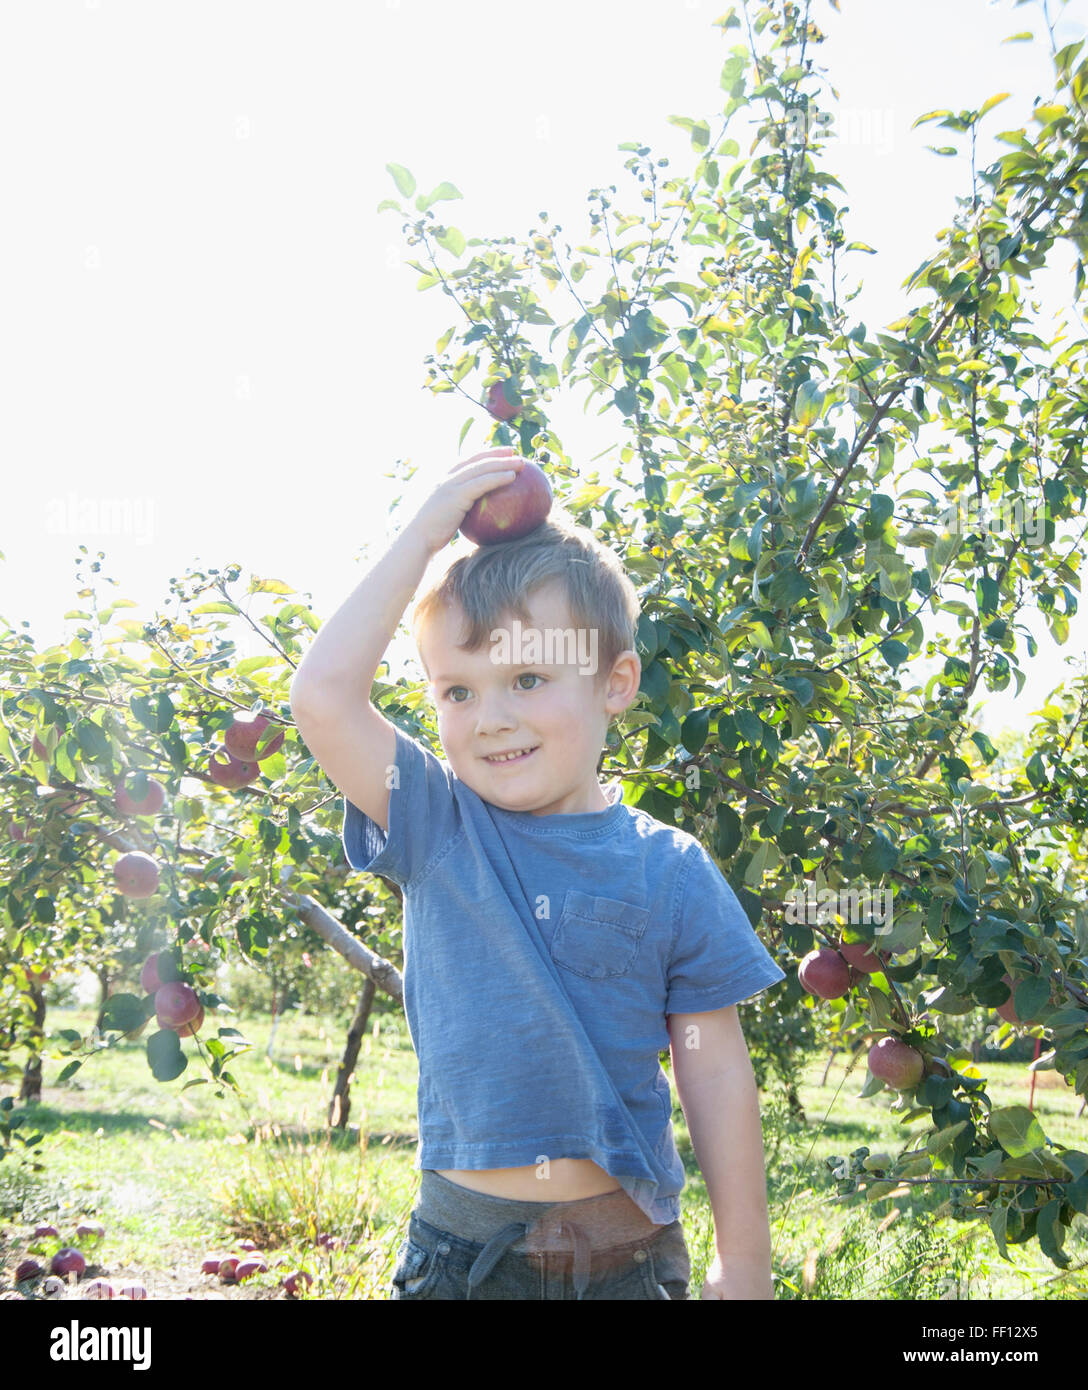 Apple Boy balancing on head in orchard Photo Stock